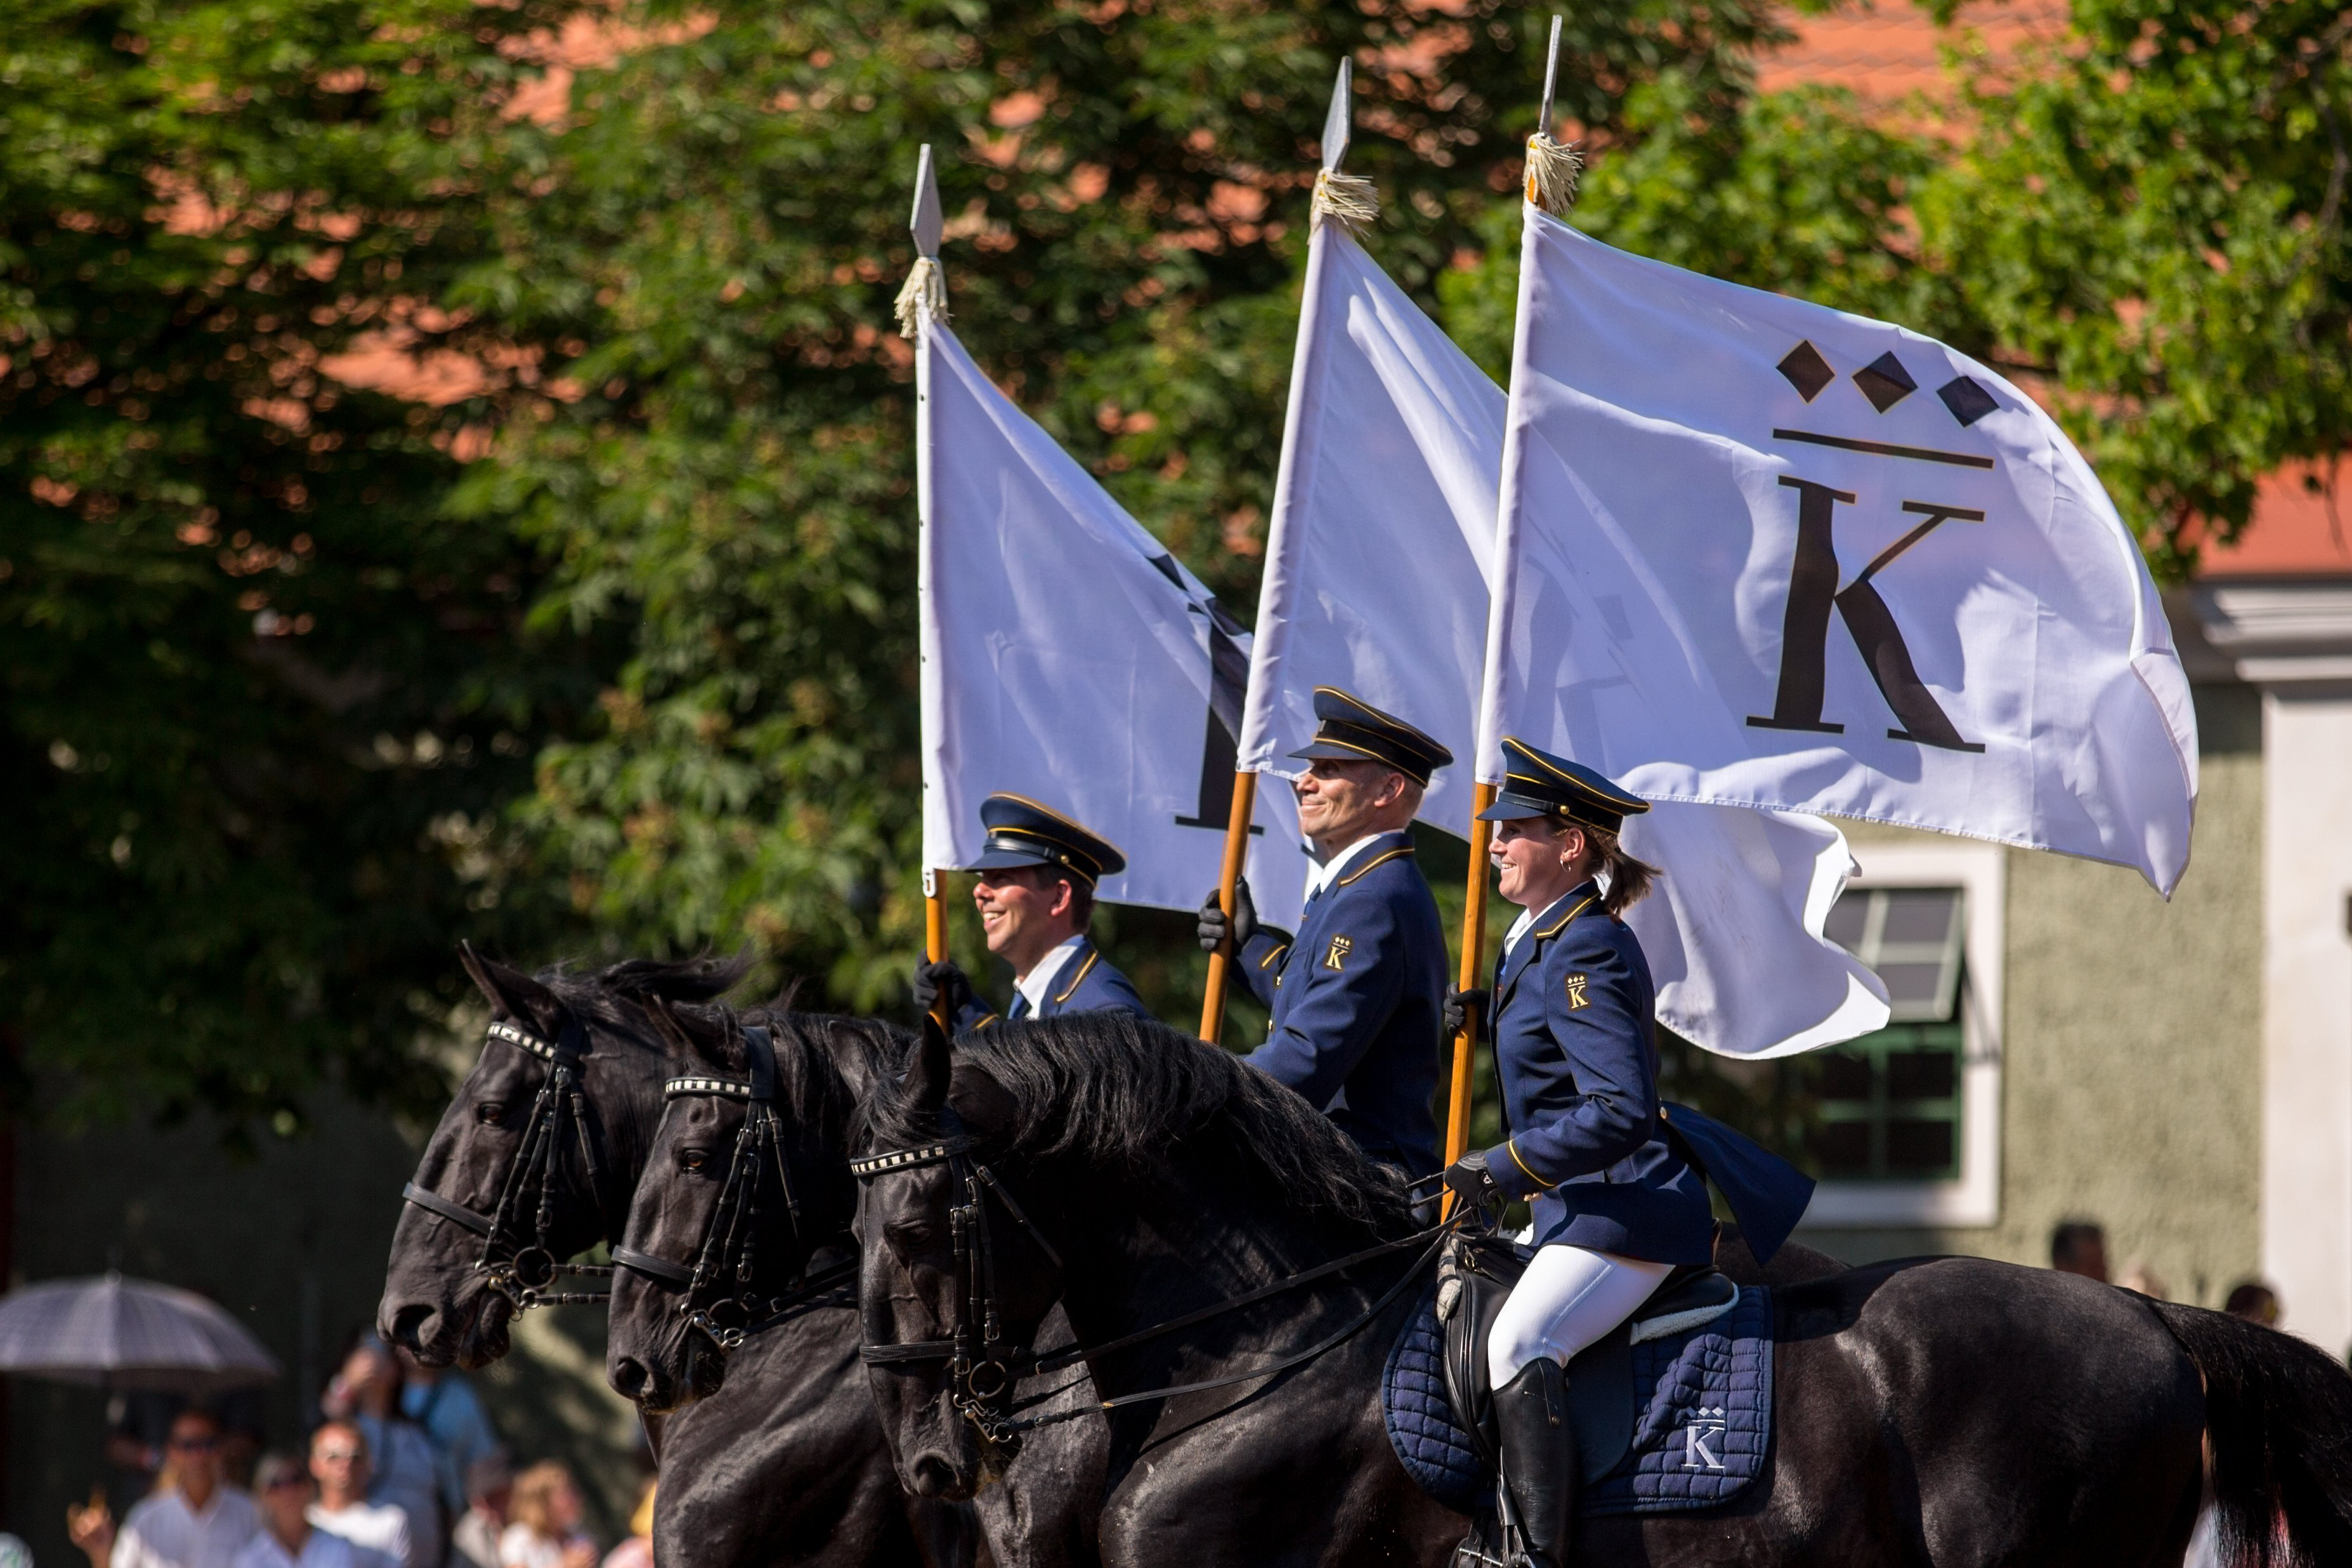 Kladruber Horse Day, 26 May 2018